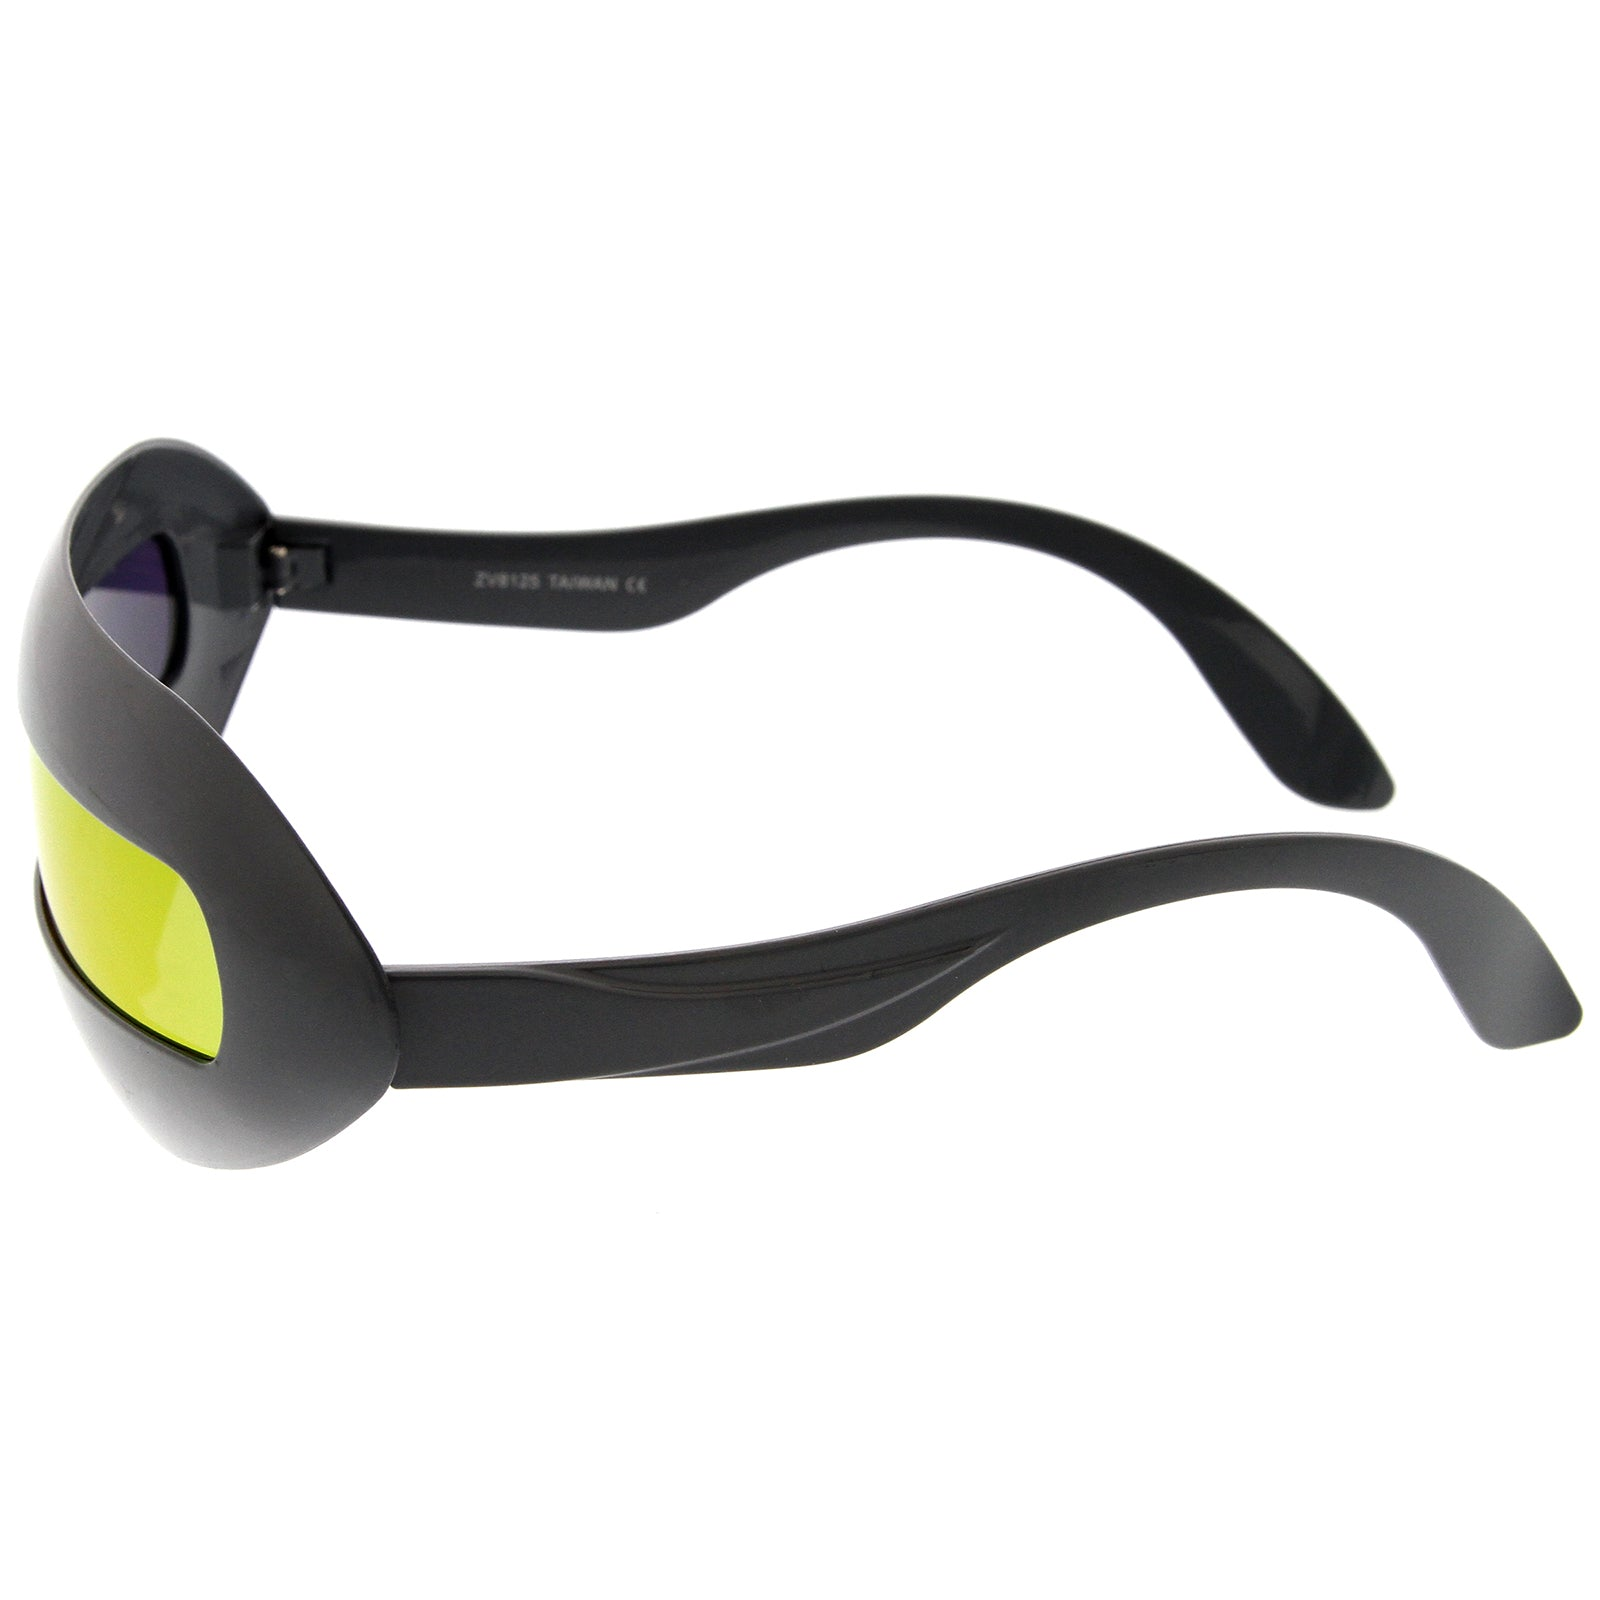 Futuristic Costume Single Shield Colored Mirror Lens Novelty Wrap Sunglasses 70mm - sunglass.la - 3